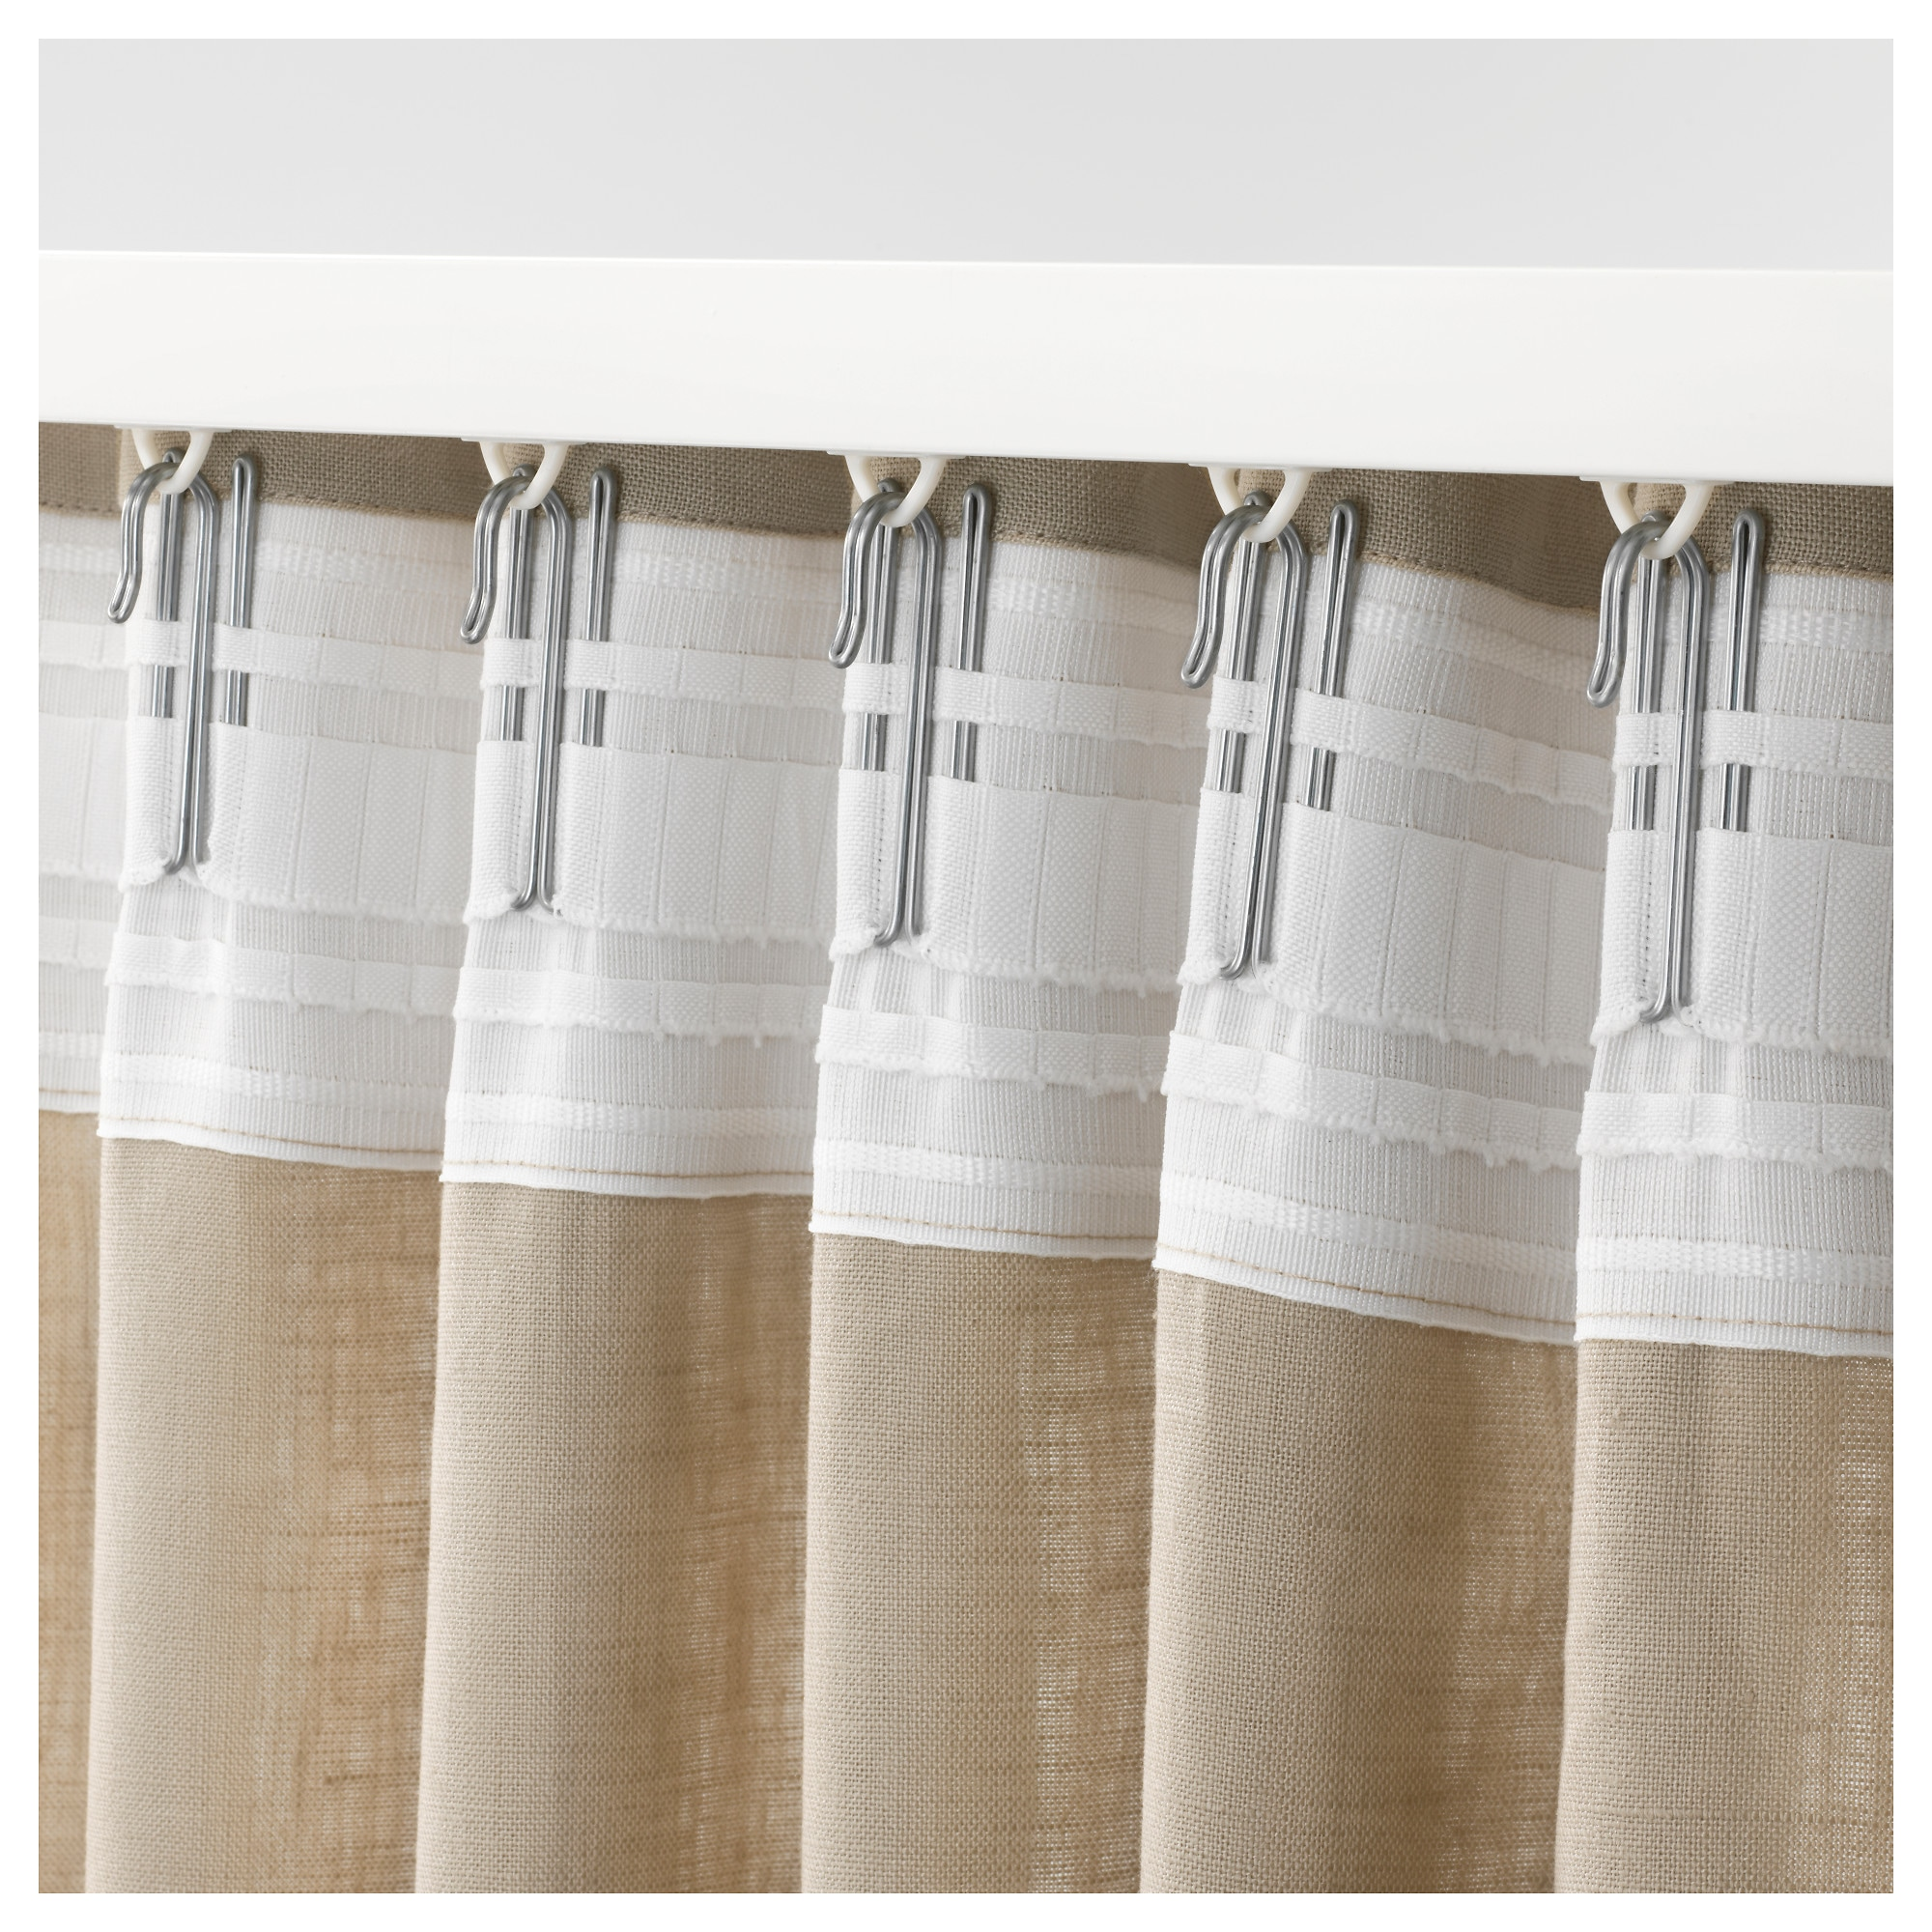 rod wide clip full and of hanging pinch back top on size window pleat curtain to traverse hang for clips extra with rings patio grommet drape how curtains hung make images door hooks tab design drapes exceptional